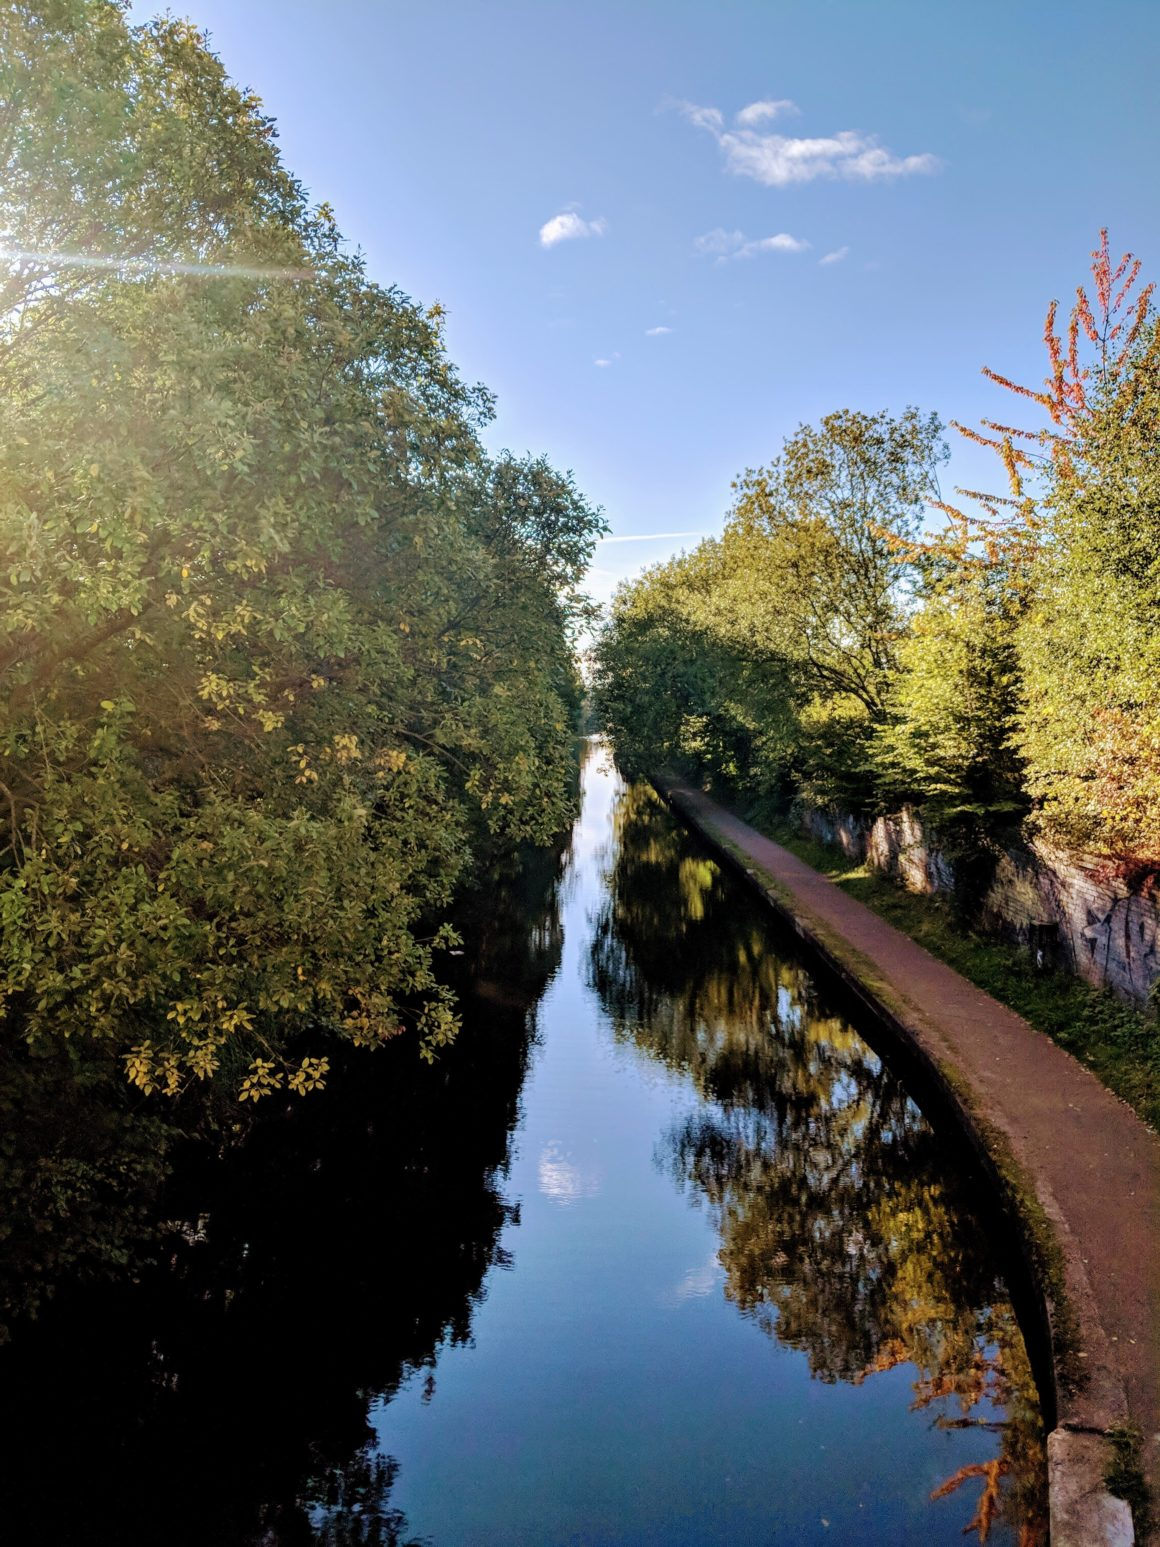 Canal passing through Selly Oak in Birmingham